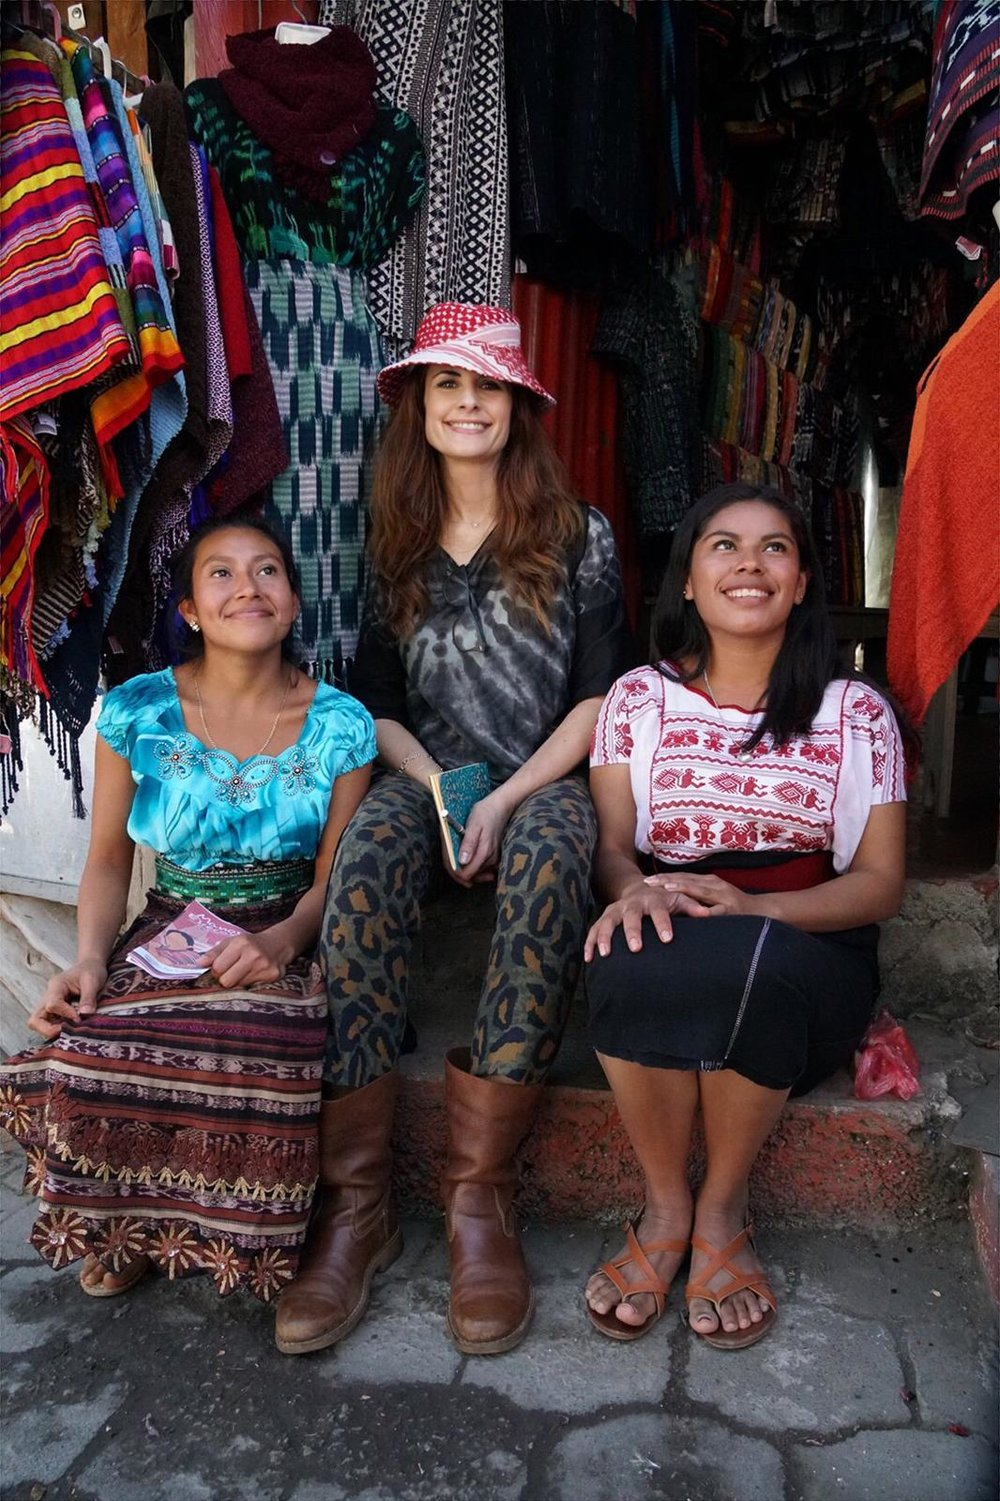 Eco-Age's Livia Firth joined Carmen and other CoutureLab Coalition members on the inaugural trip.